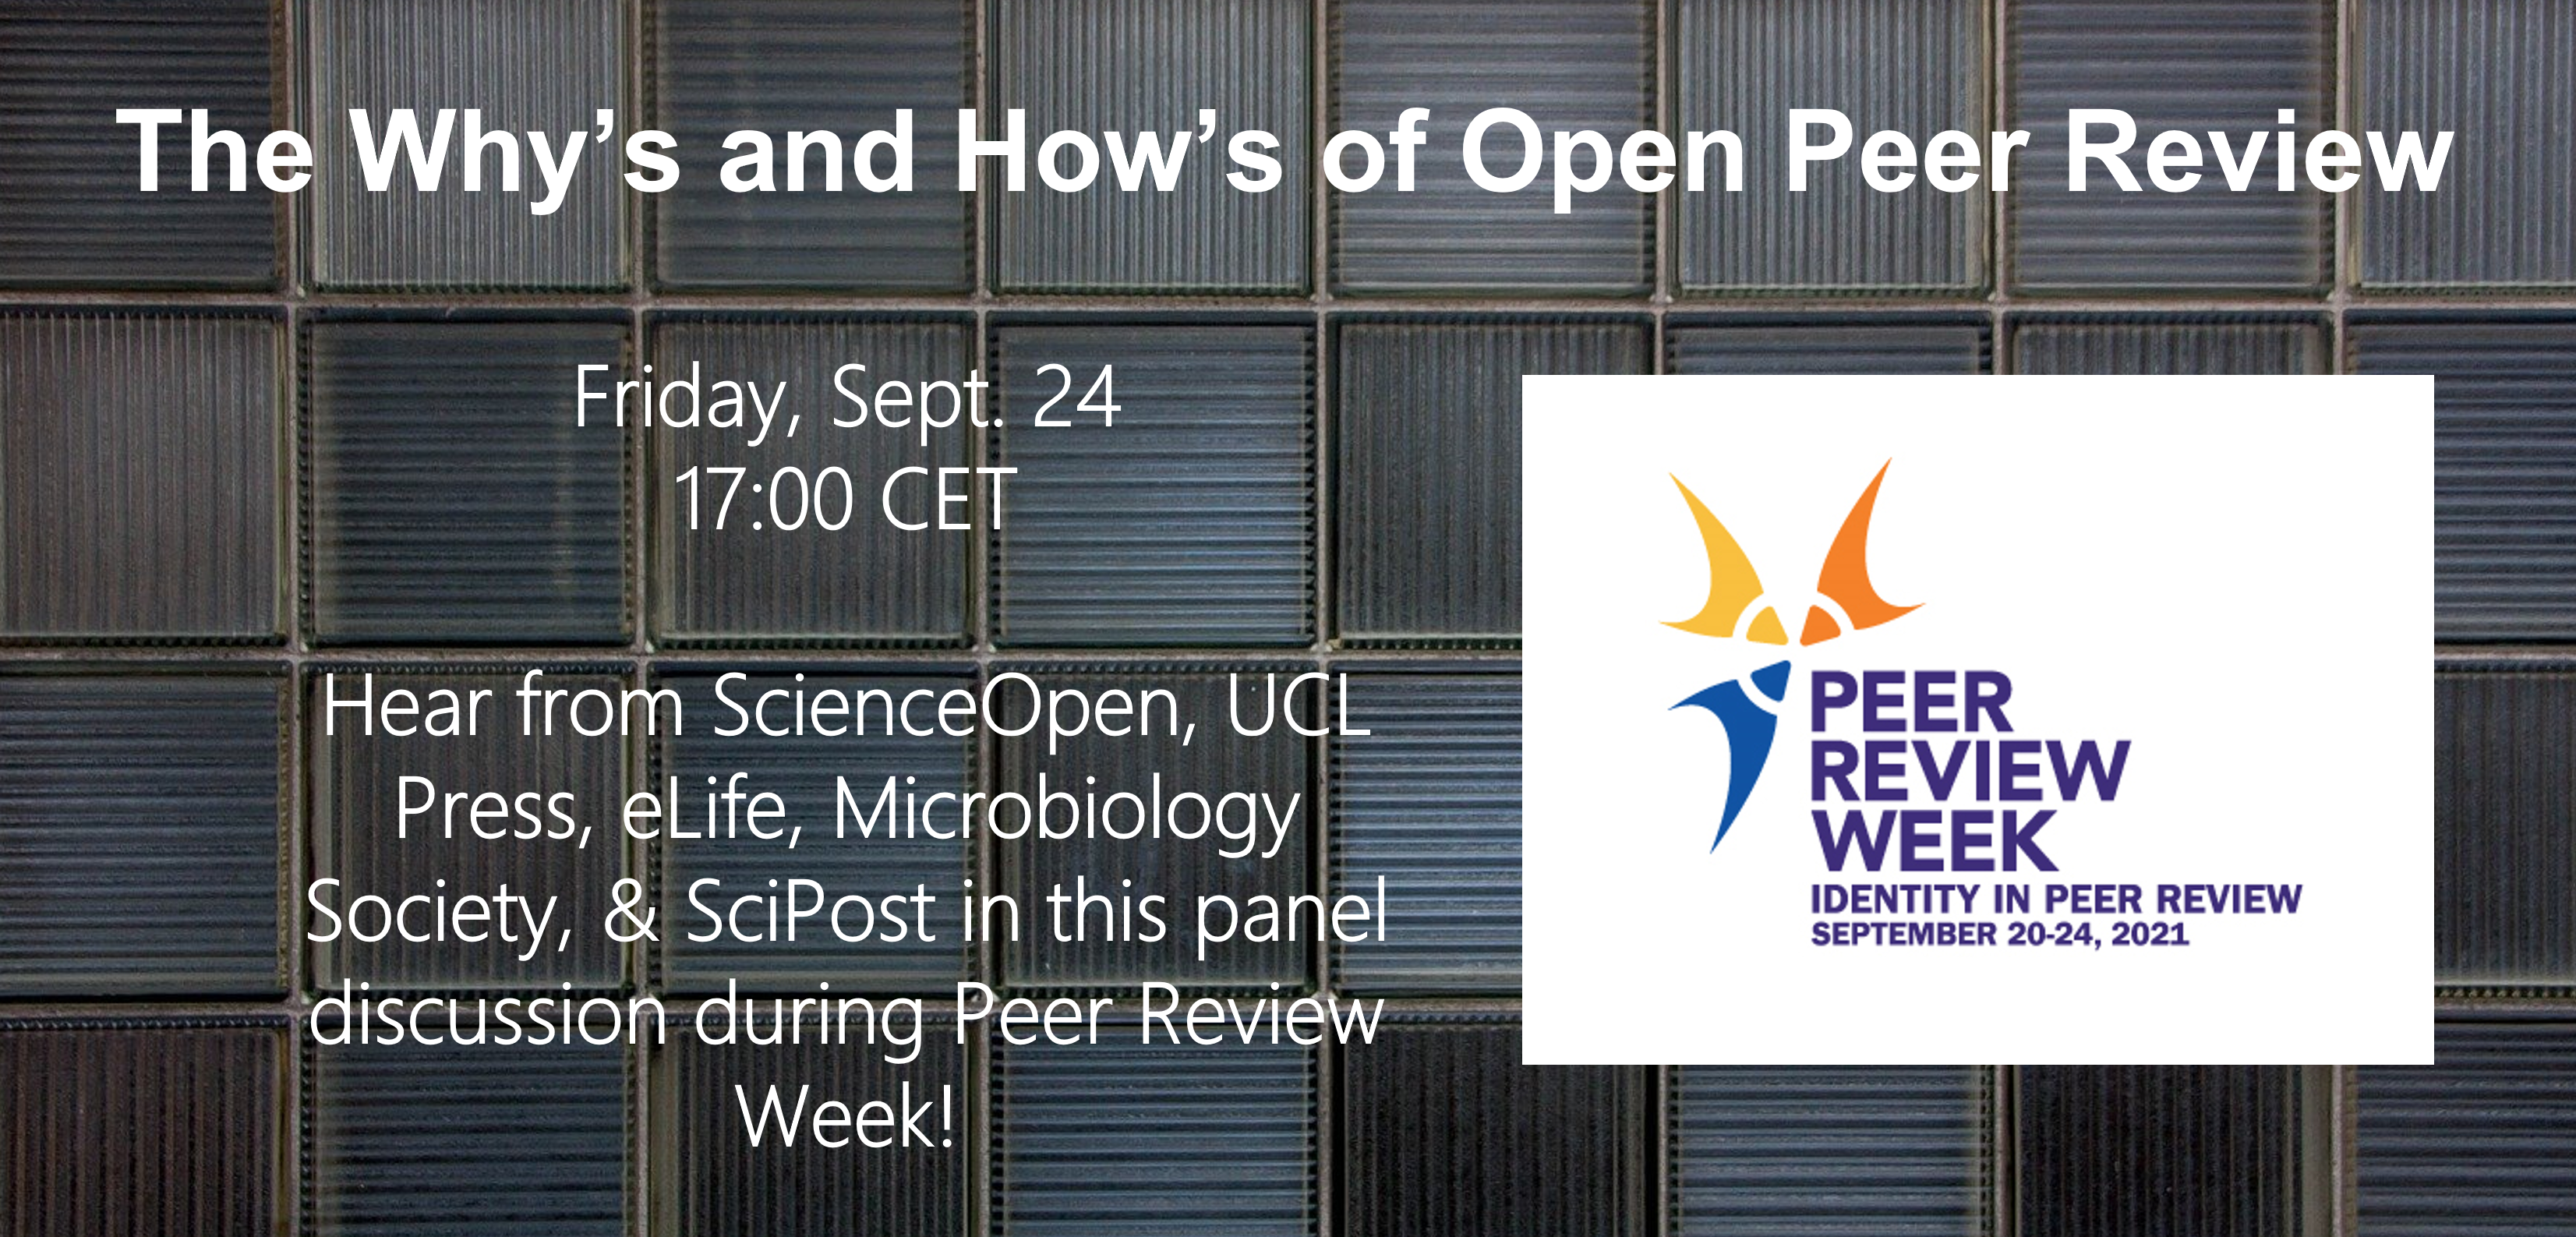 The Why's and How's of Open Peer Review—a Panel Discussion for Peer Review Week 2021